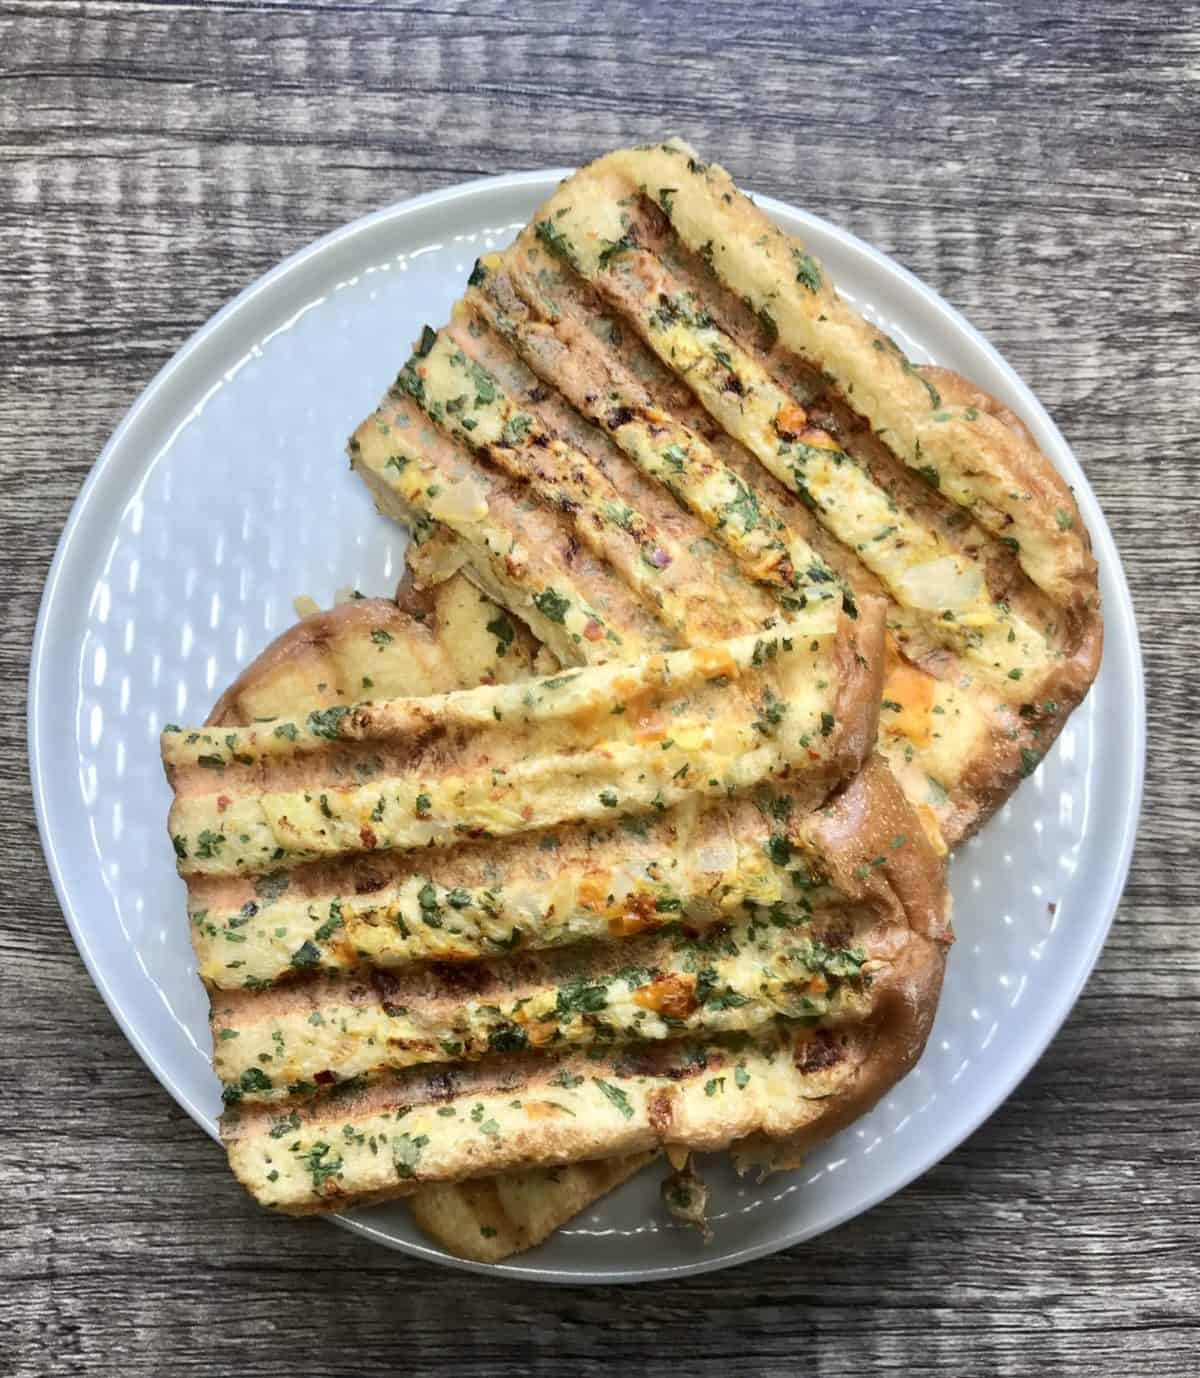 Indian Eggy Bread recipe